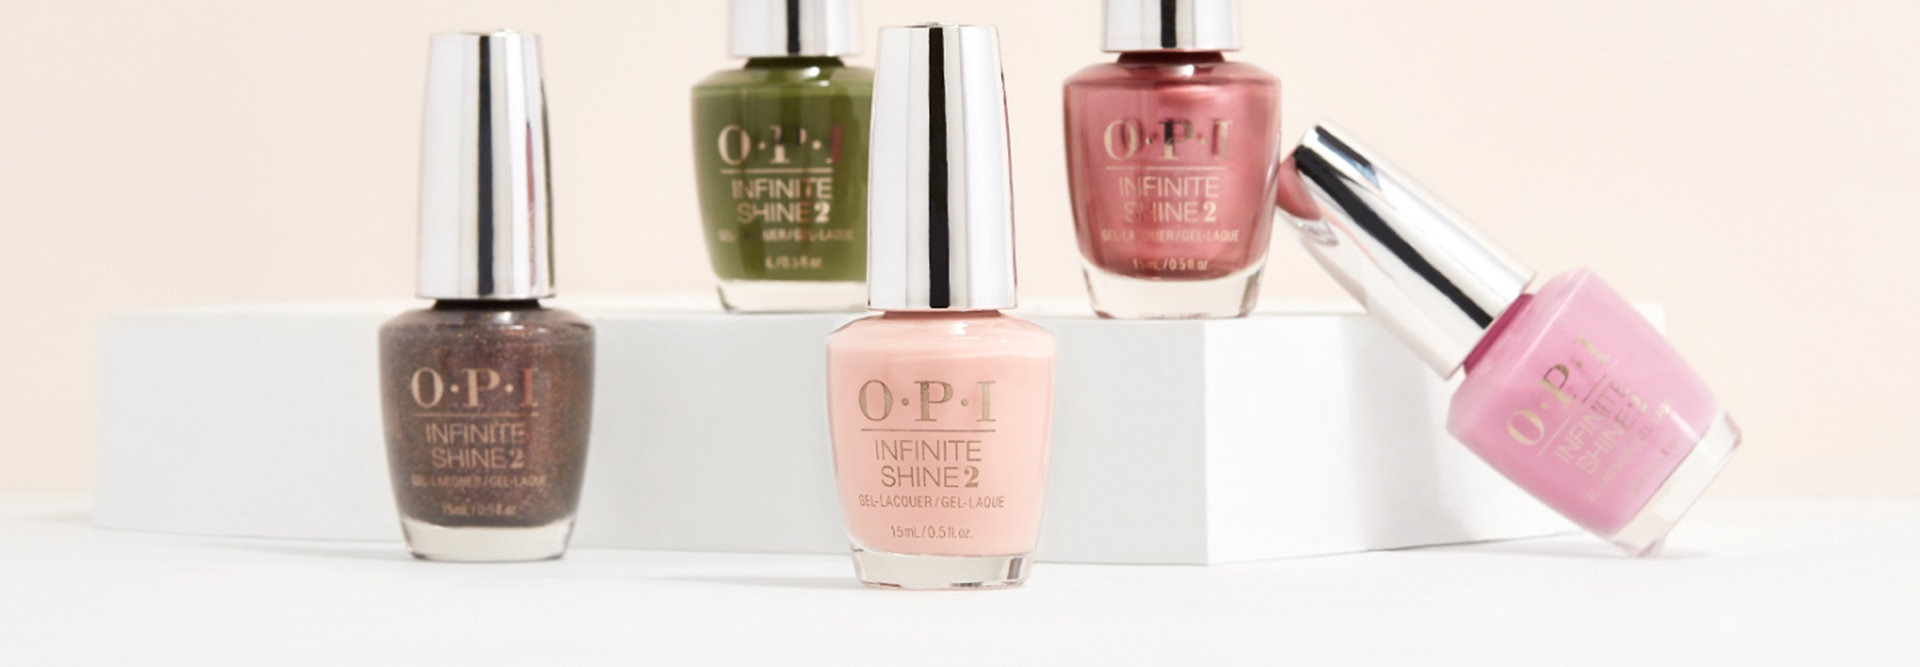 Shop all OPI Products